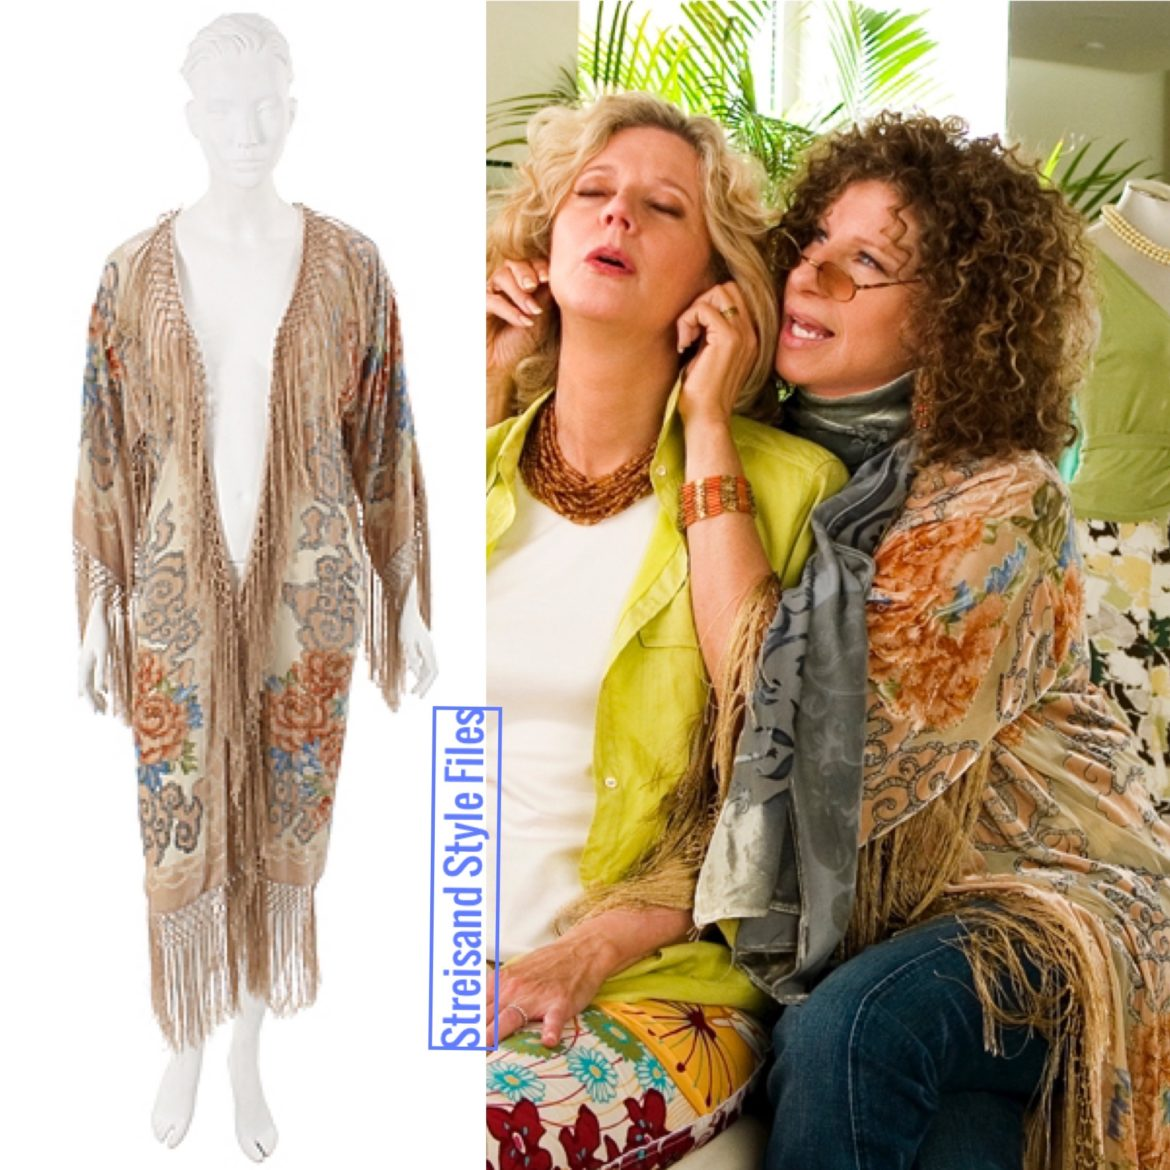 In A Vintage Piano Shawl Duster In Meet The Fockers